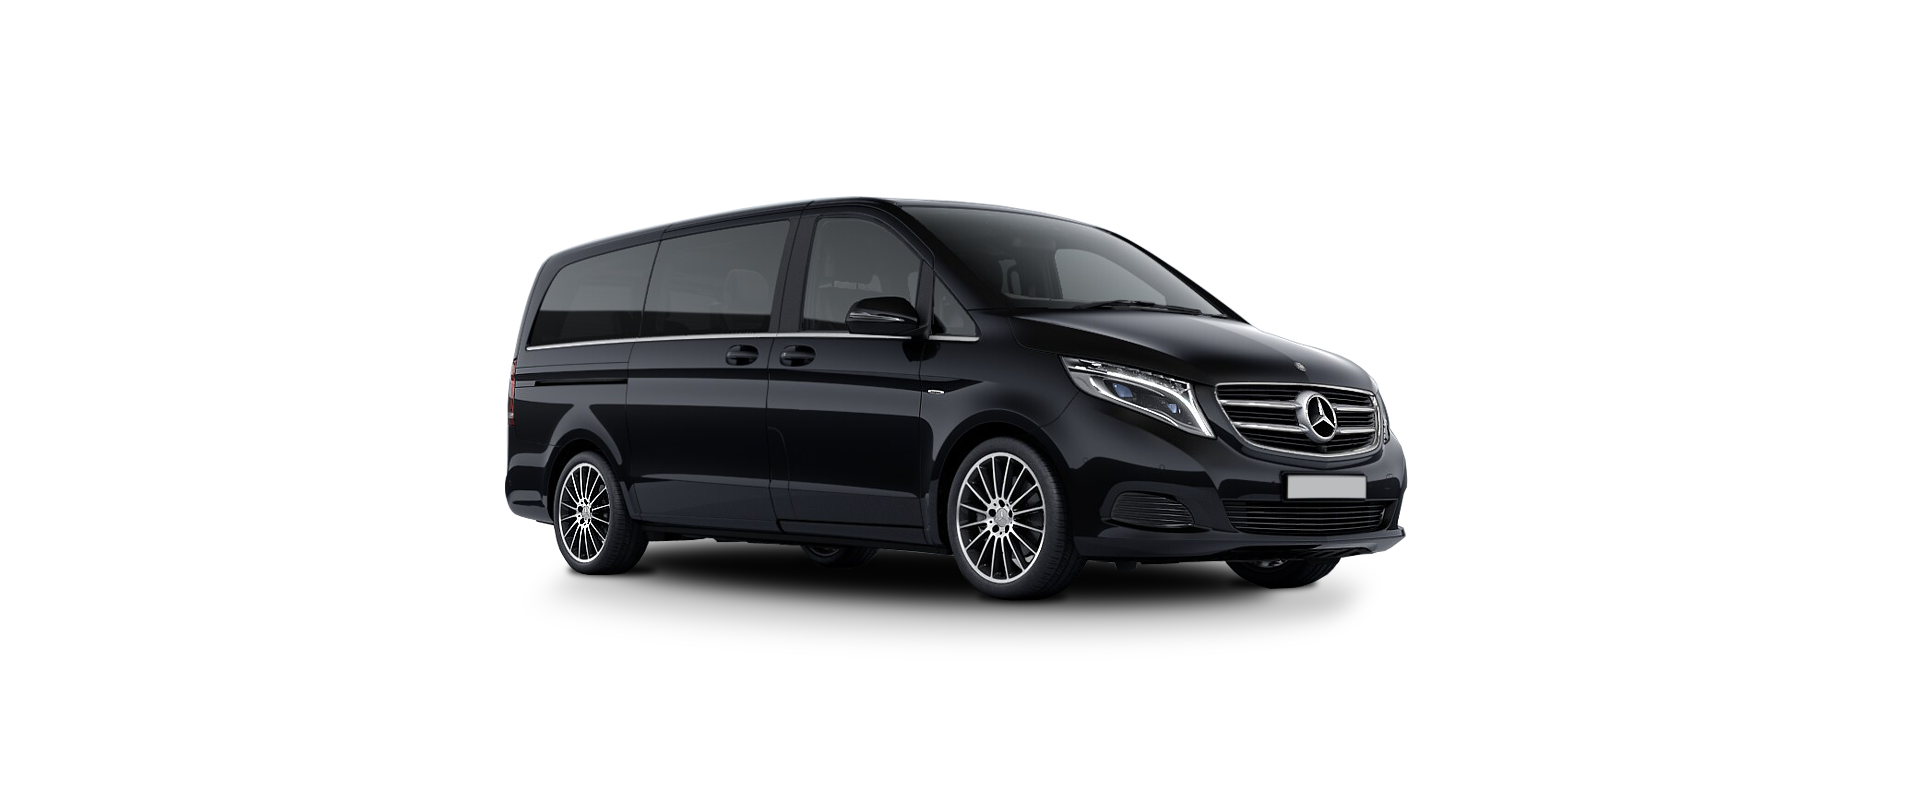 Used Mercedes Viano London >> London Airport Transfers - Book a transfer now!